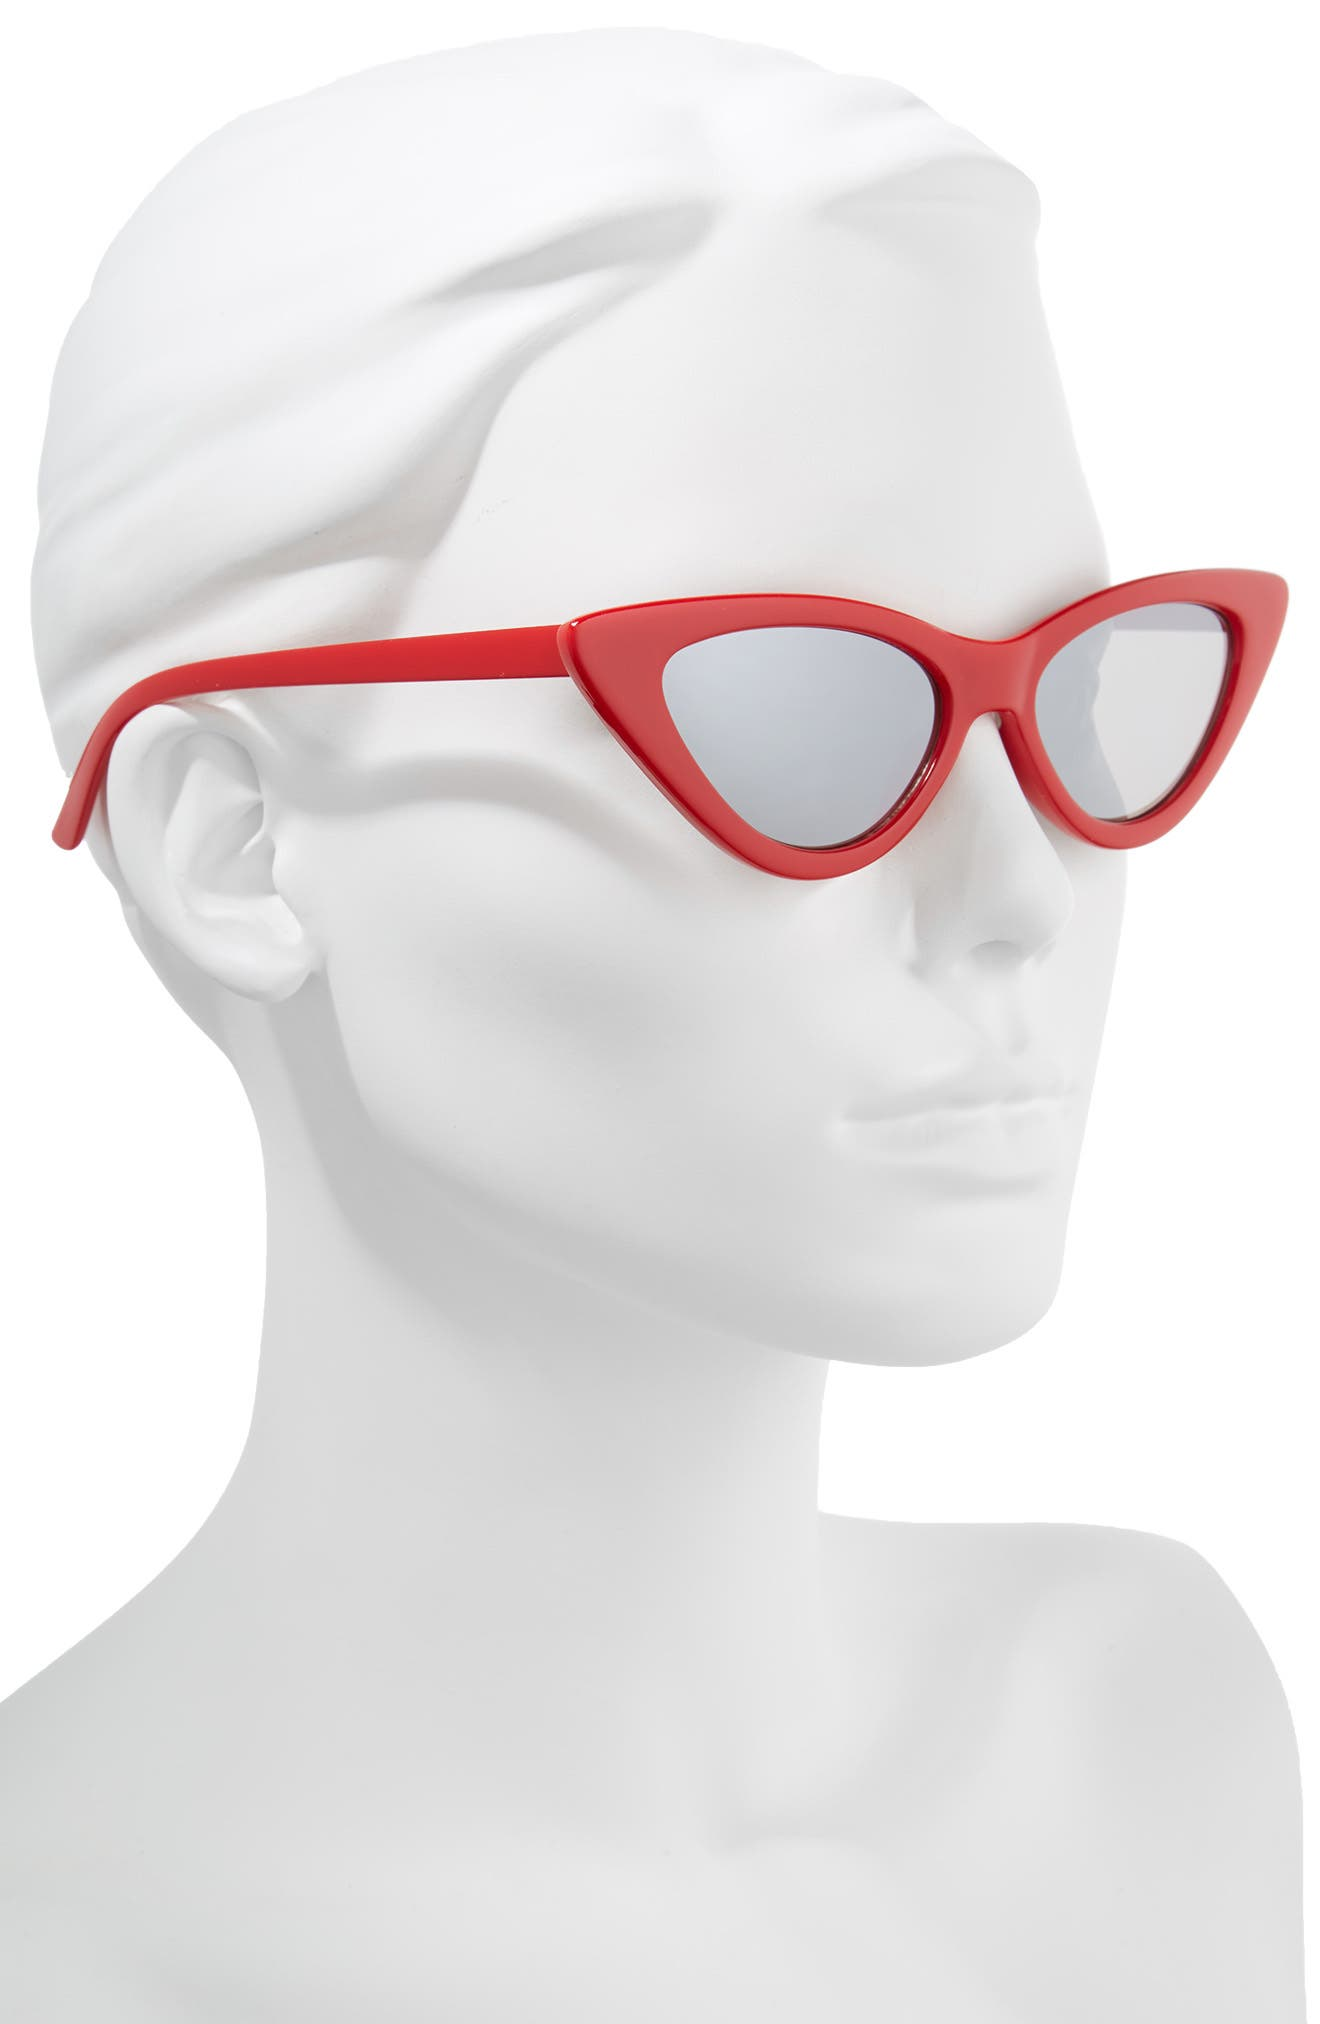 62mm Cat Eye Sunglasses,                             Alternate thumbnail 2, color,                             Red/ Silver